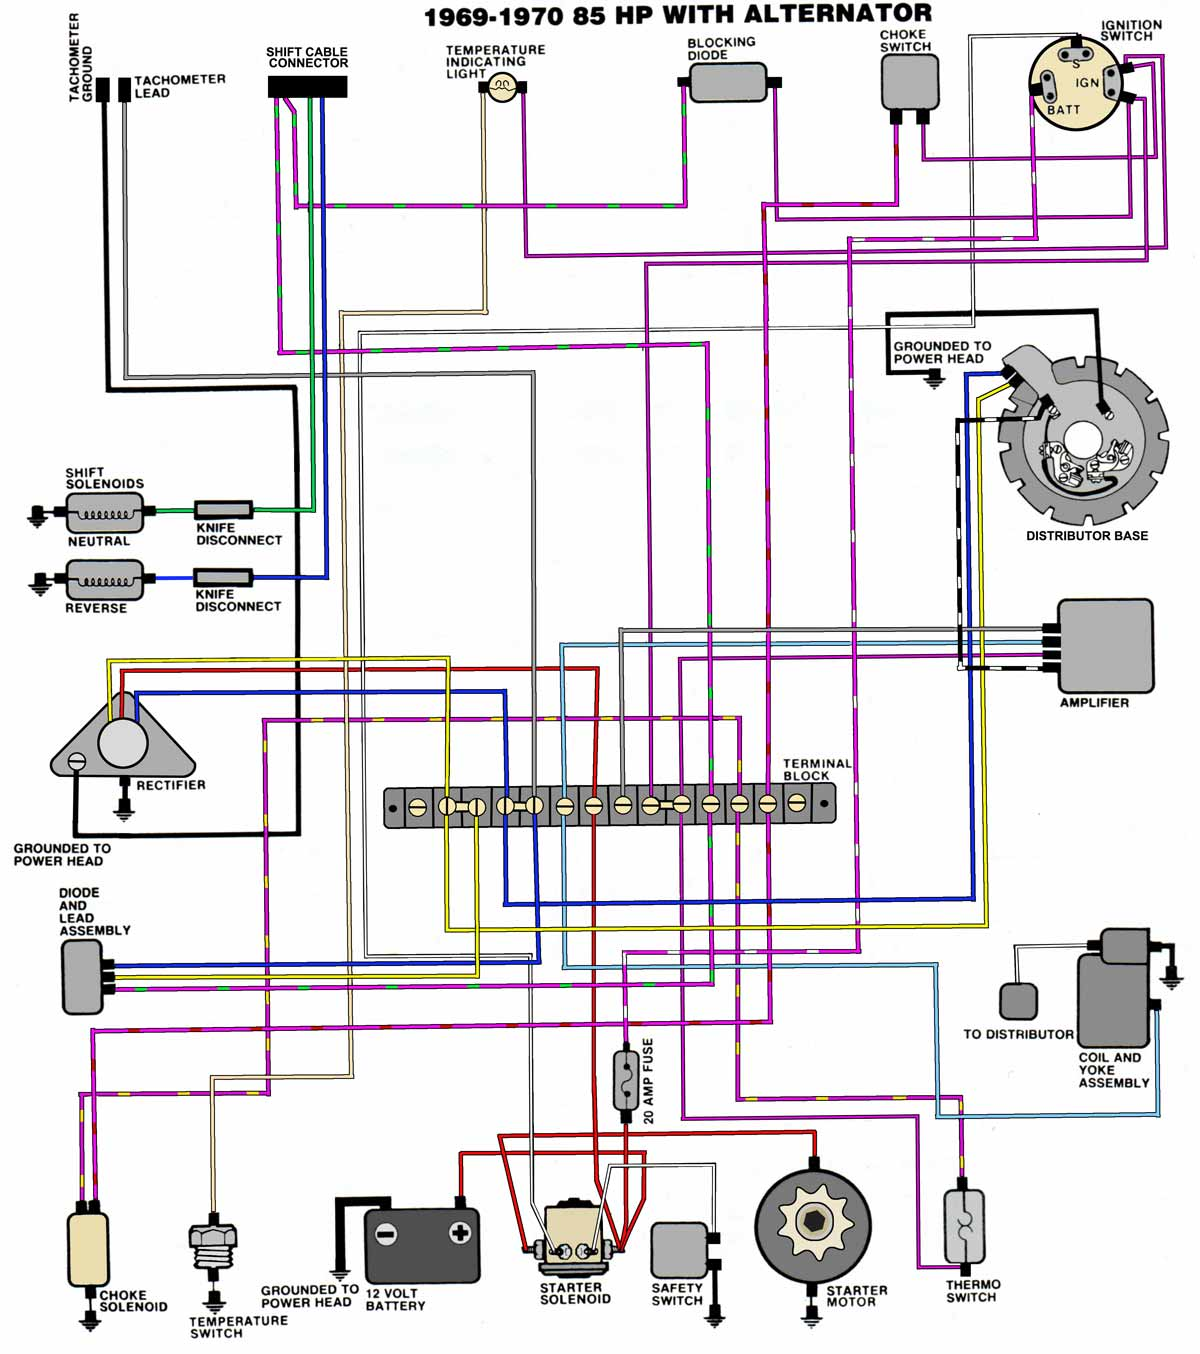 mastertech marine evinrude johnson outboard wiring diagrams Engine Wiring Diagram 1976  Tecumseh Engines Wiring Diagram 1988 Toyota Engine Wiring Diagram Toyota 22R Engine Electrical Diagram